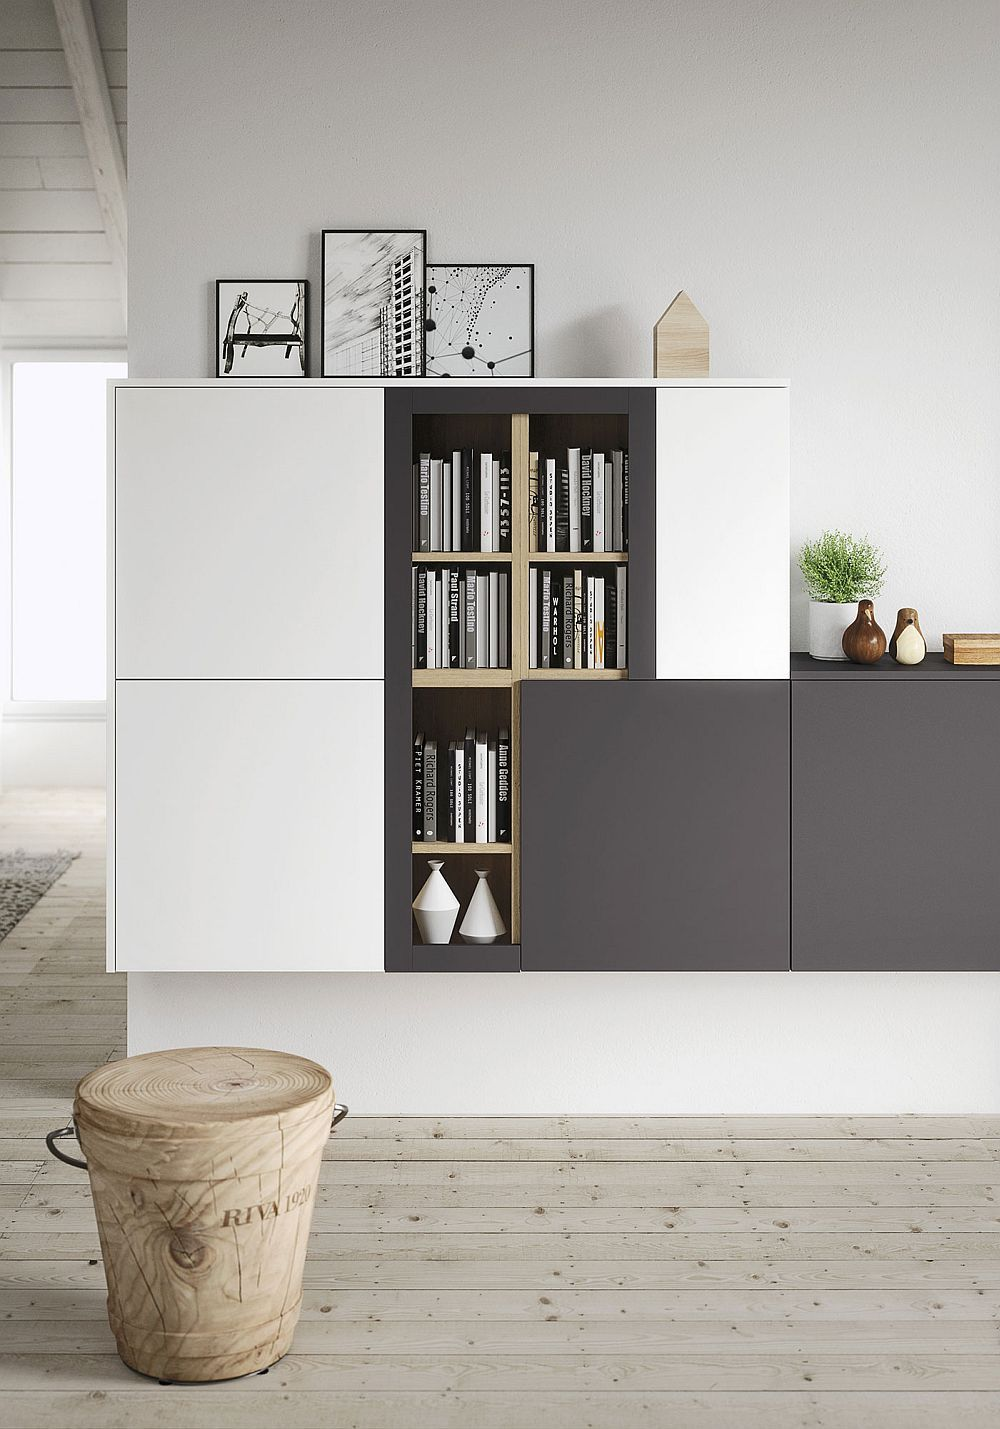 First Kitchen Modular Freedom Wrapped In Casual Minimalism Small Living Room Storage Living Room Shelves Living Room Storage Cabinet